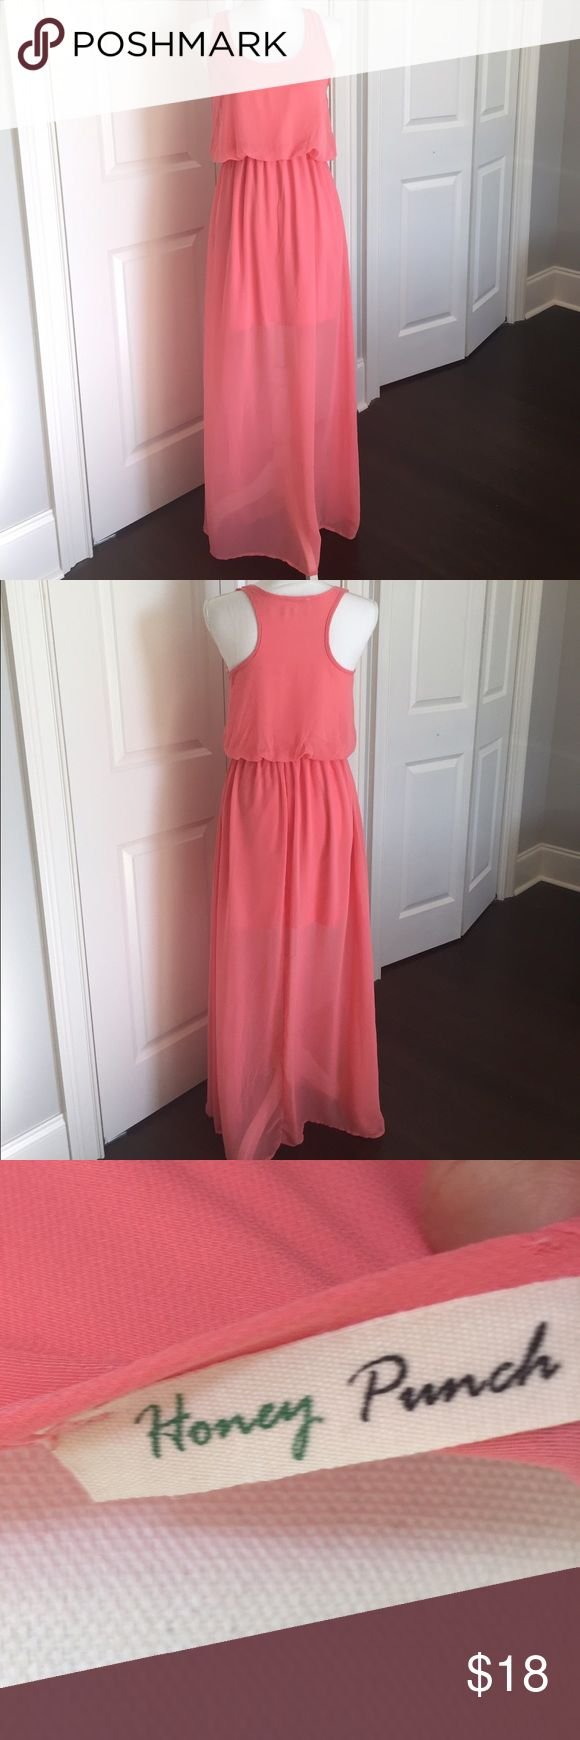 Coral Maxi Dress Flowy coral maxi dress size small. Worn only a few times. Good condition. Dresses Maxi